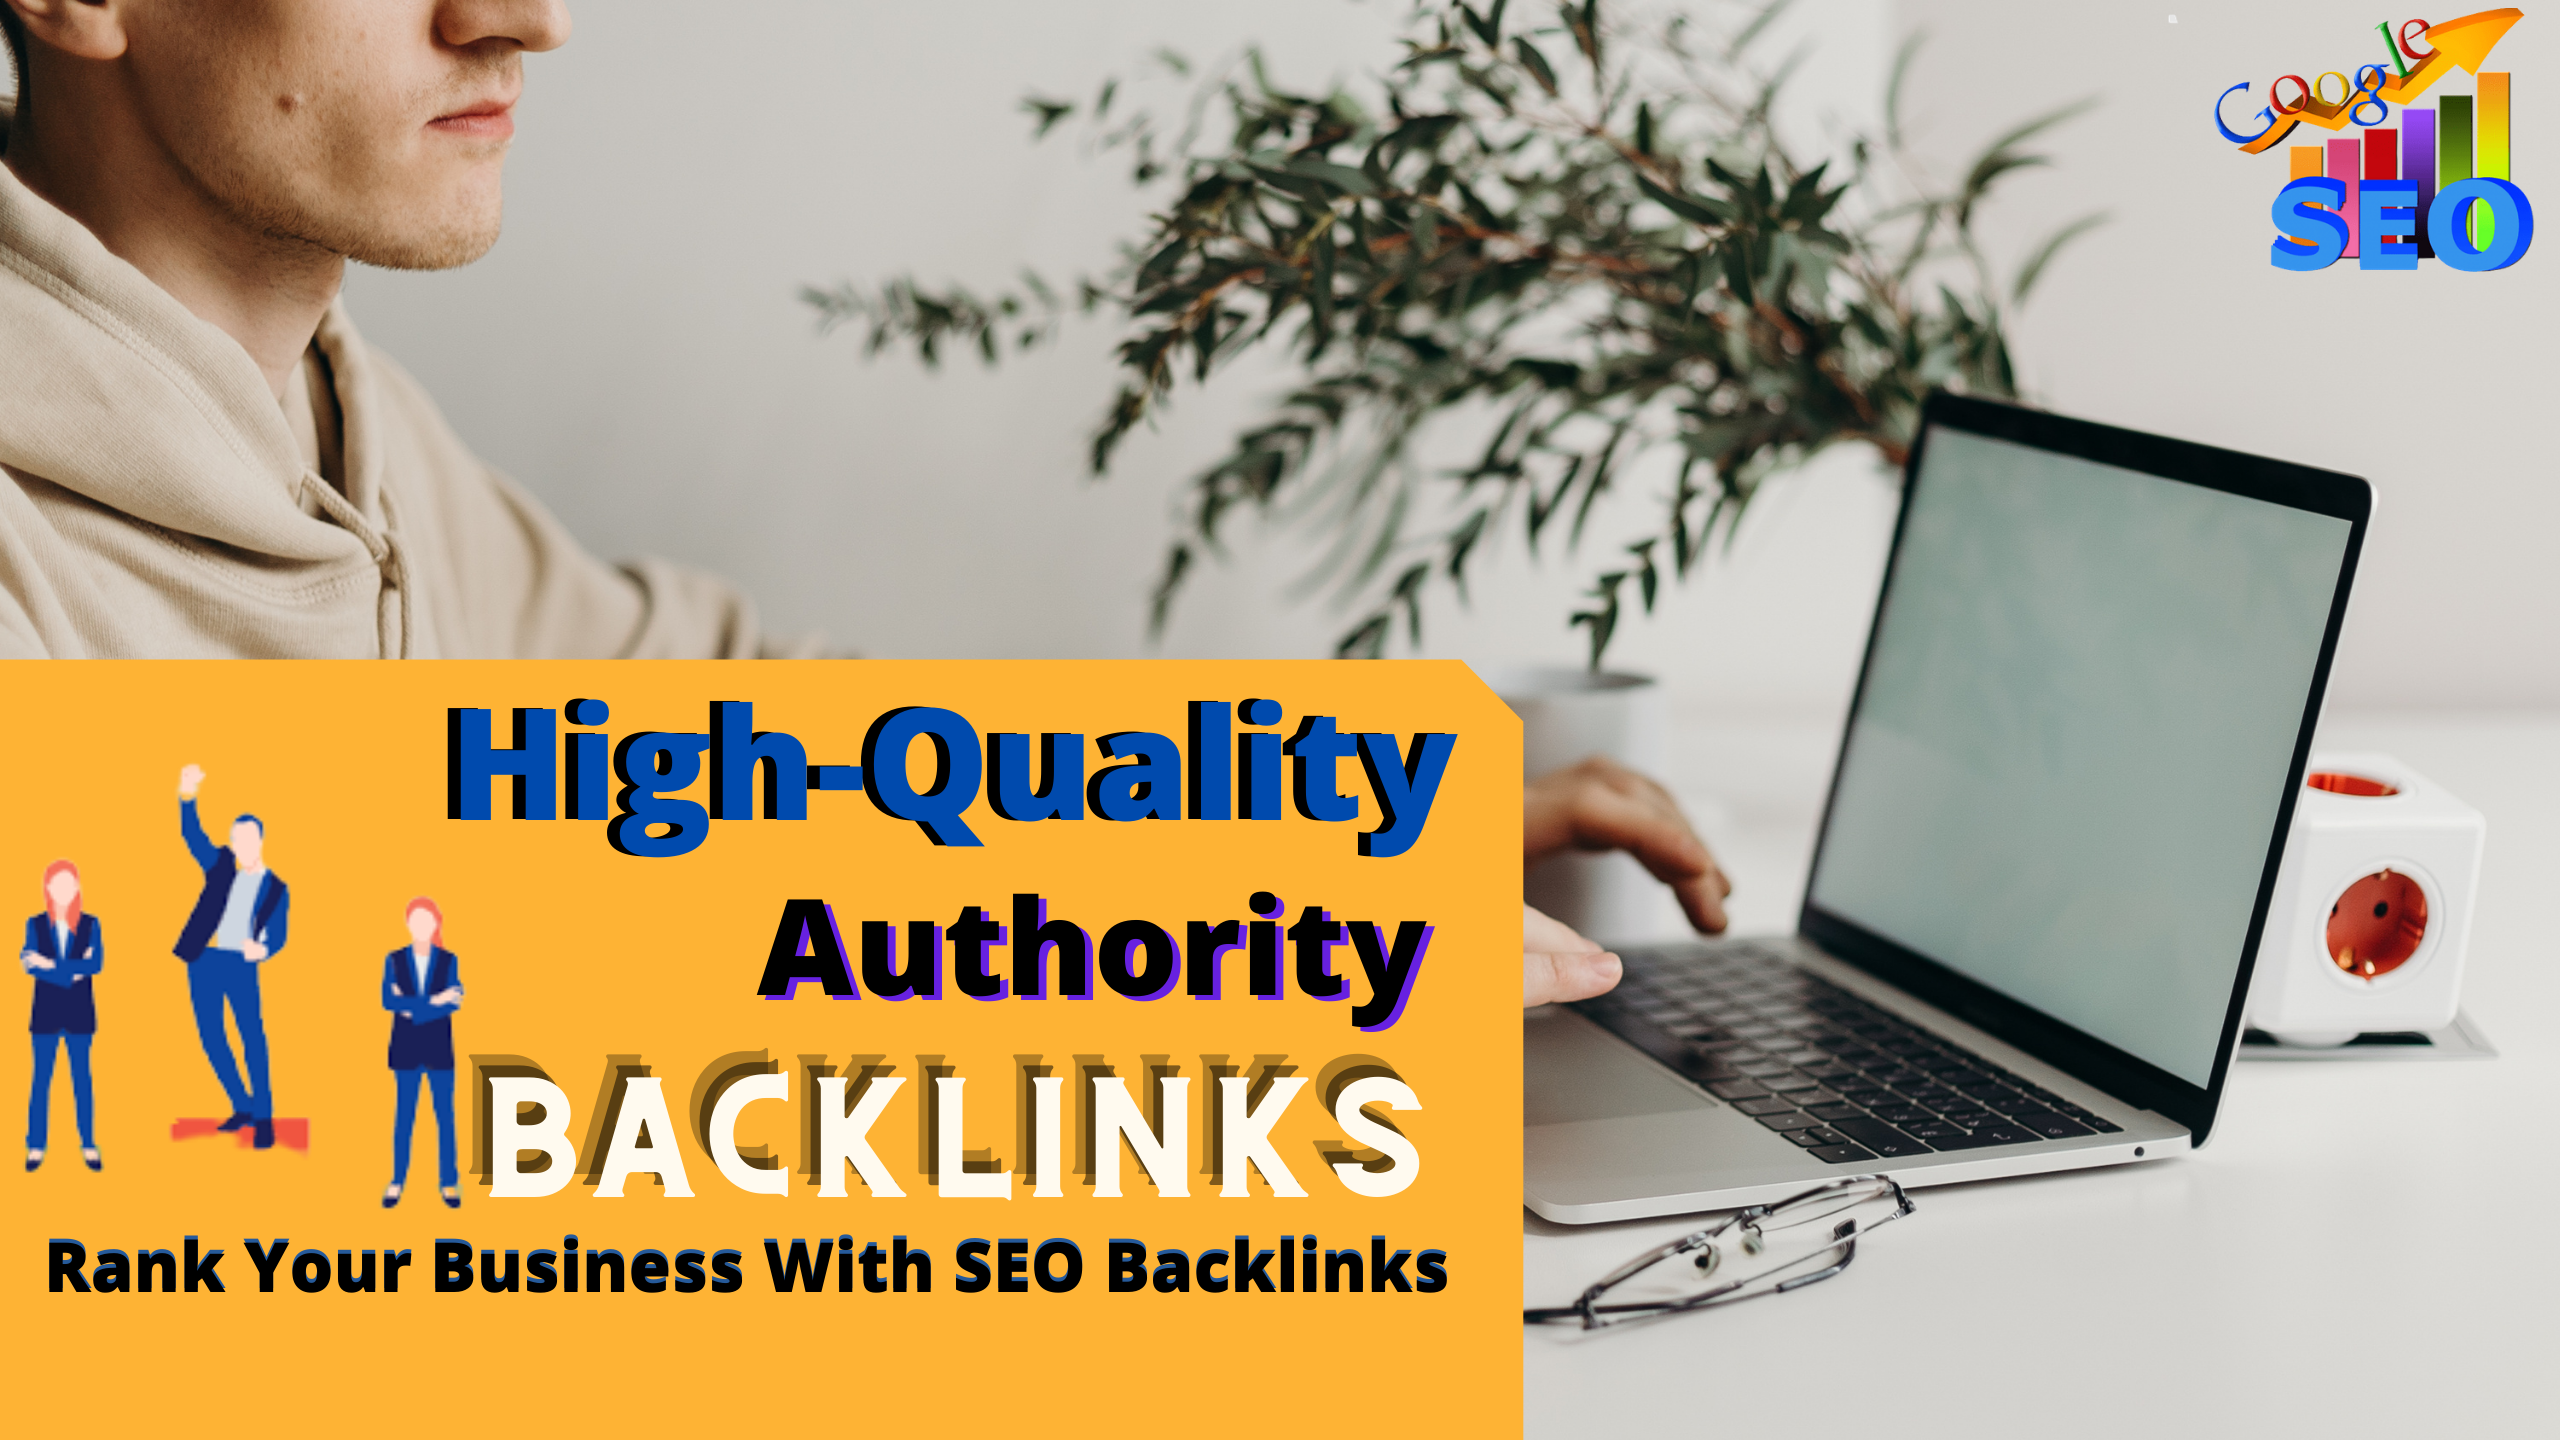 I will provide 120+ HQ authority backlinks for Rank Your Business/Website